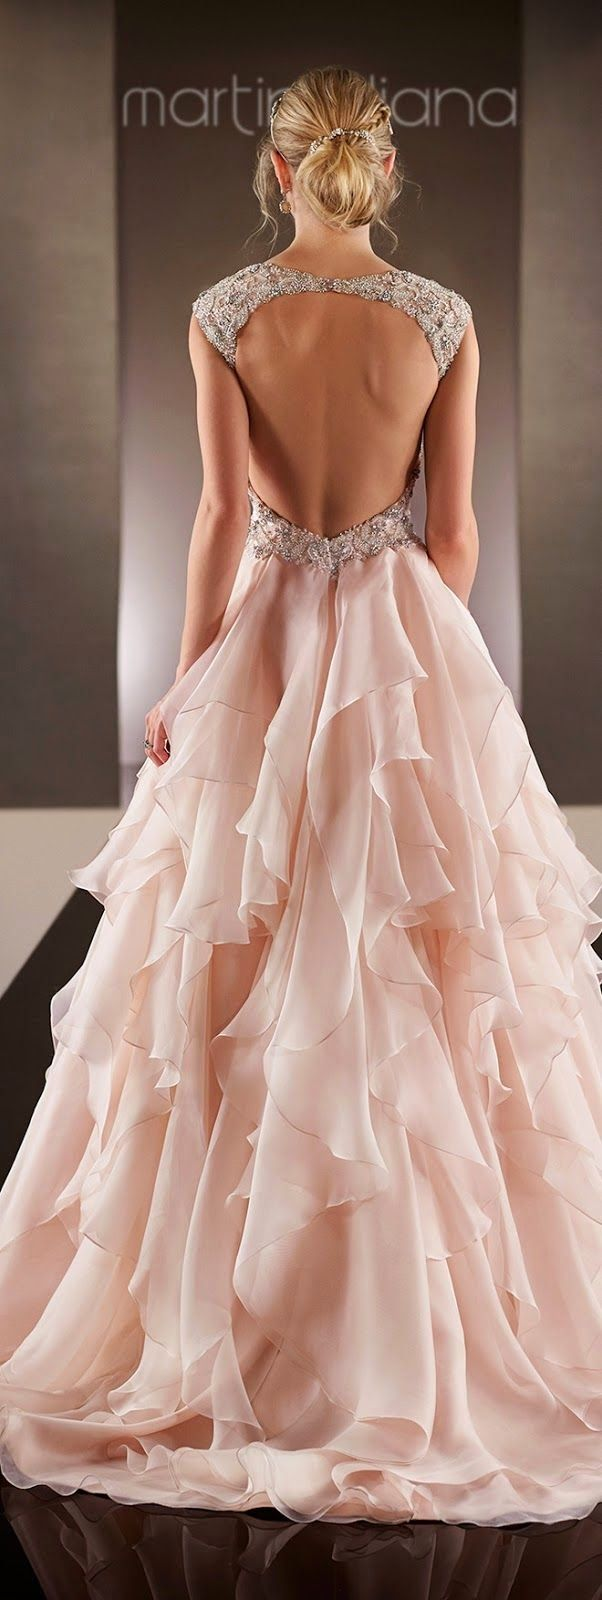 Bridal 2015 latest dress | Style | Pinterest | Ph, Vestiditos y Novios